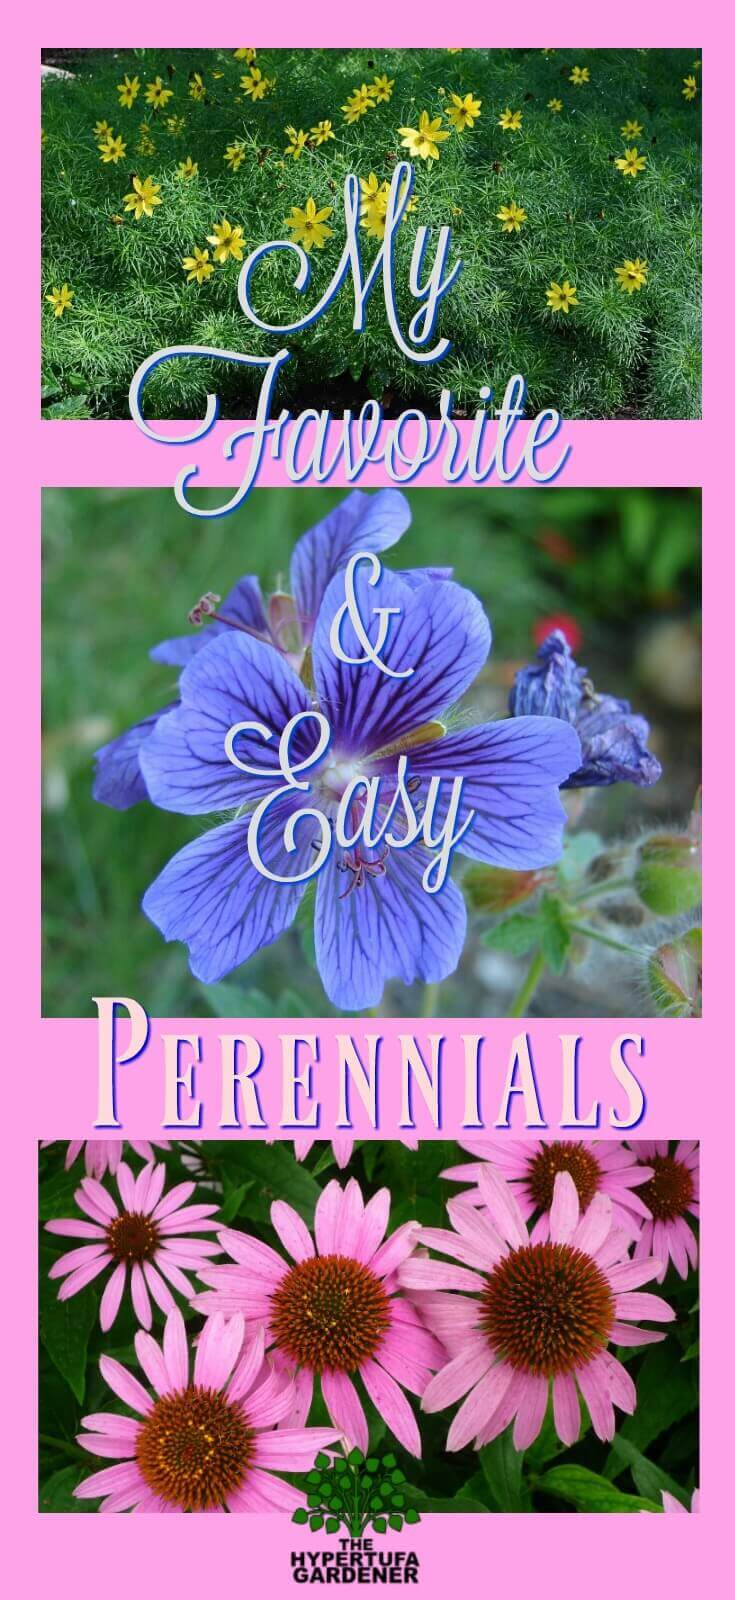 image of favorite perennials